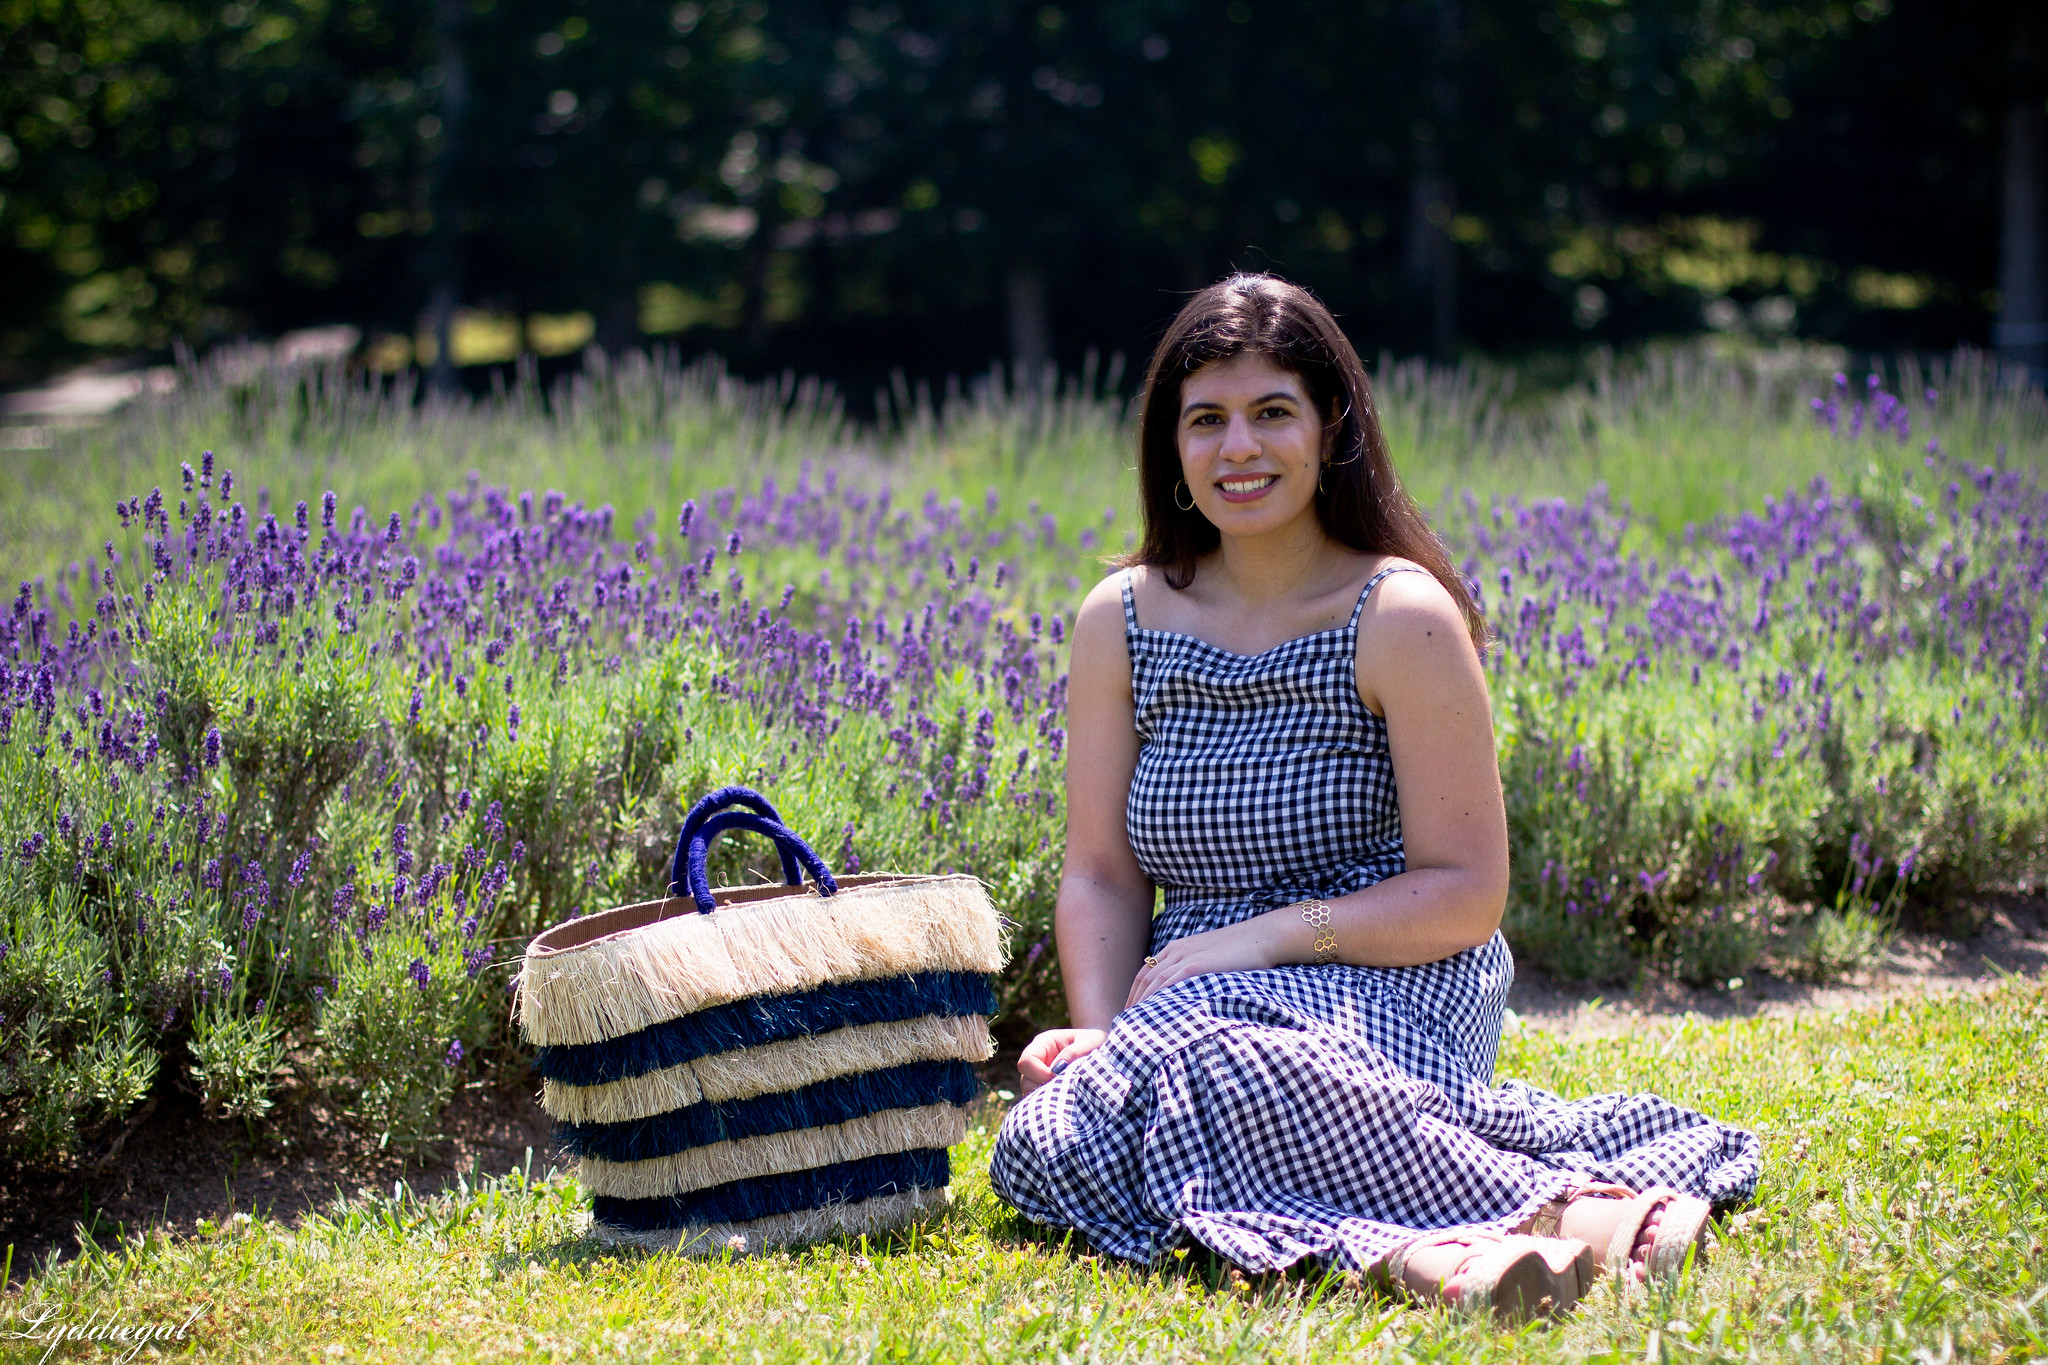 gingham maxi dress, pinata tote bag, lavender field-15.jpg